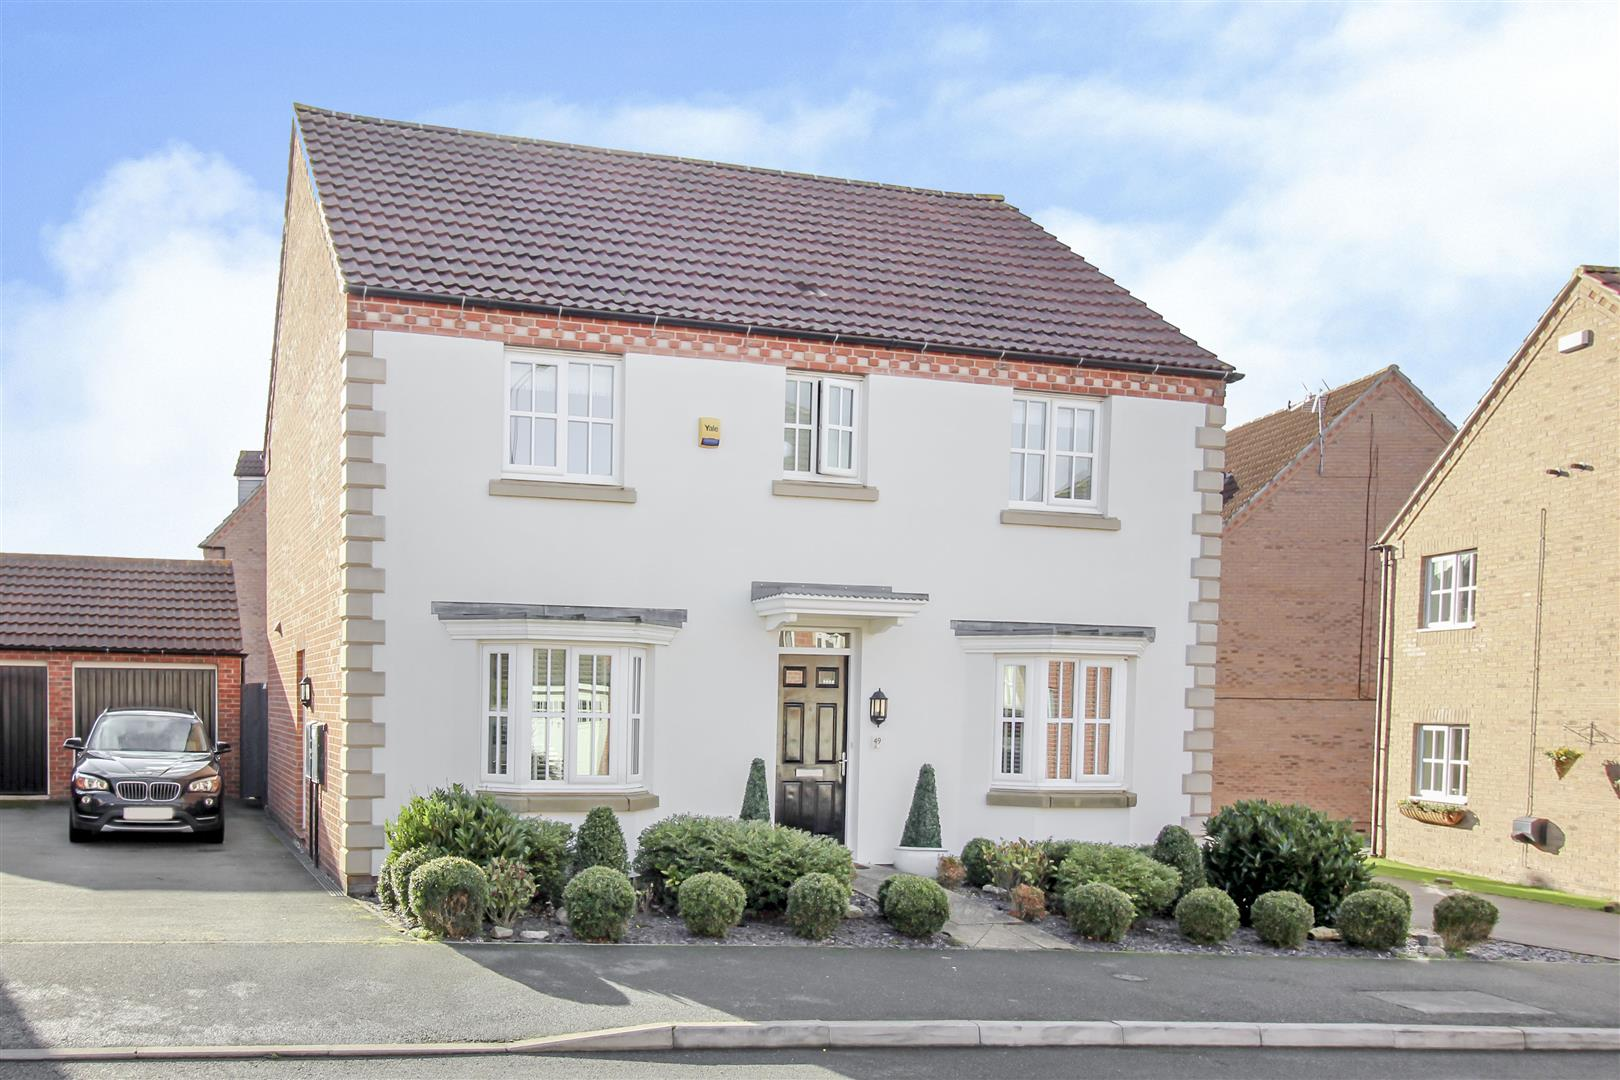 4 Bedrooms Detached House for sale in Cordelia Way, Chellaston, Derby